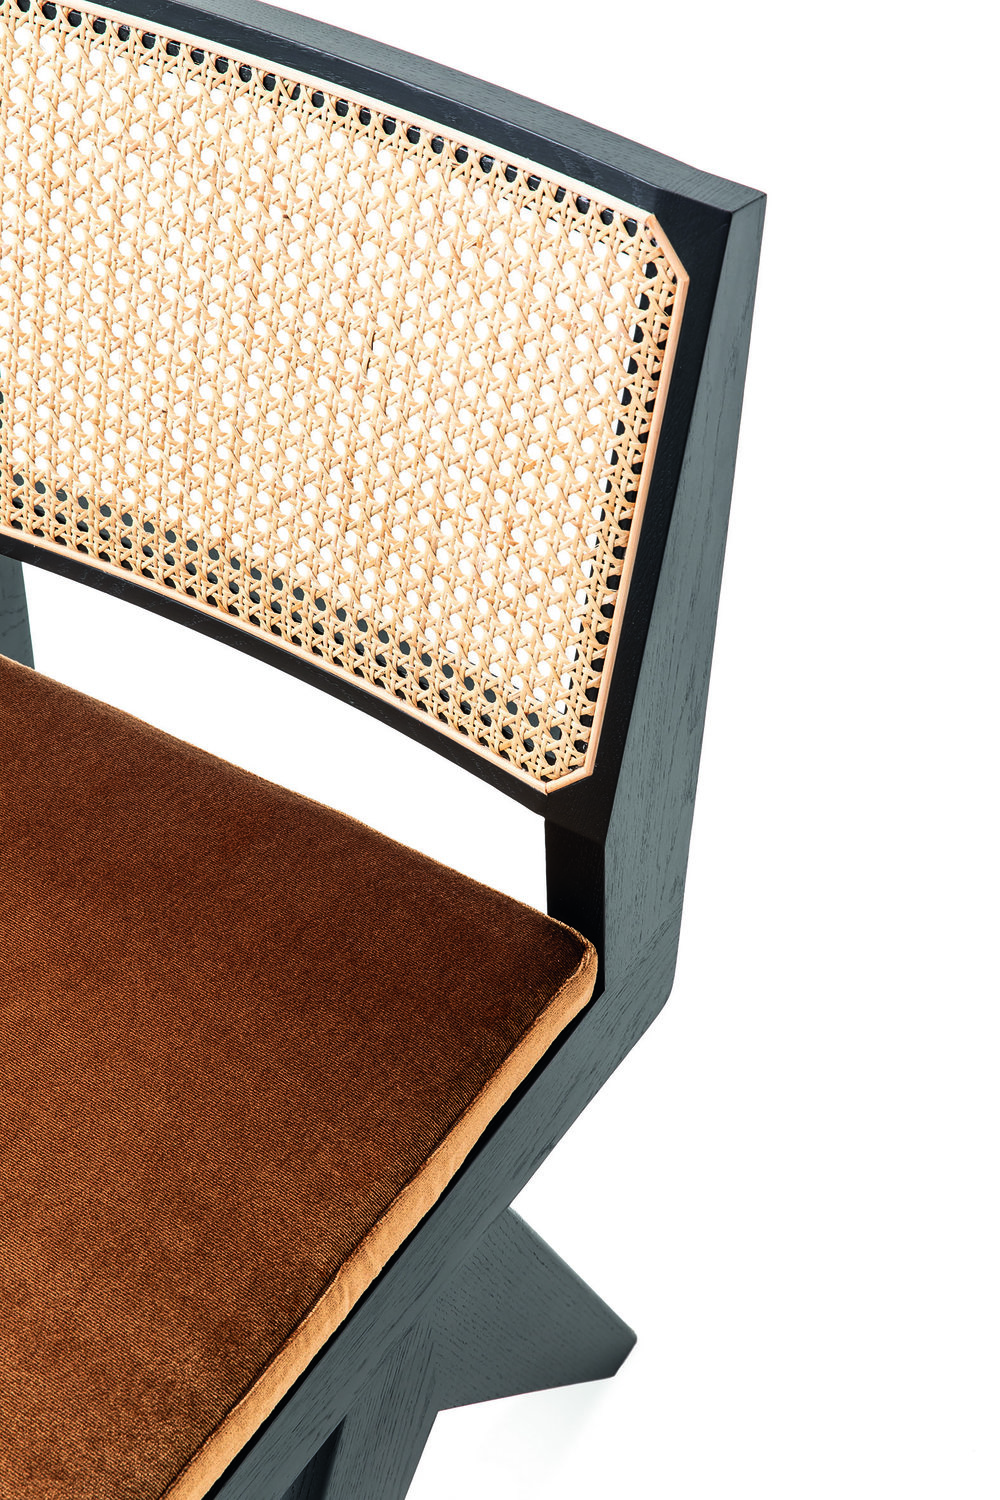 Capitol Office Chair  designed by Pierre Jeanneret for the Chandigarh Project and now produced by Cassina. Photo © Cassina.